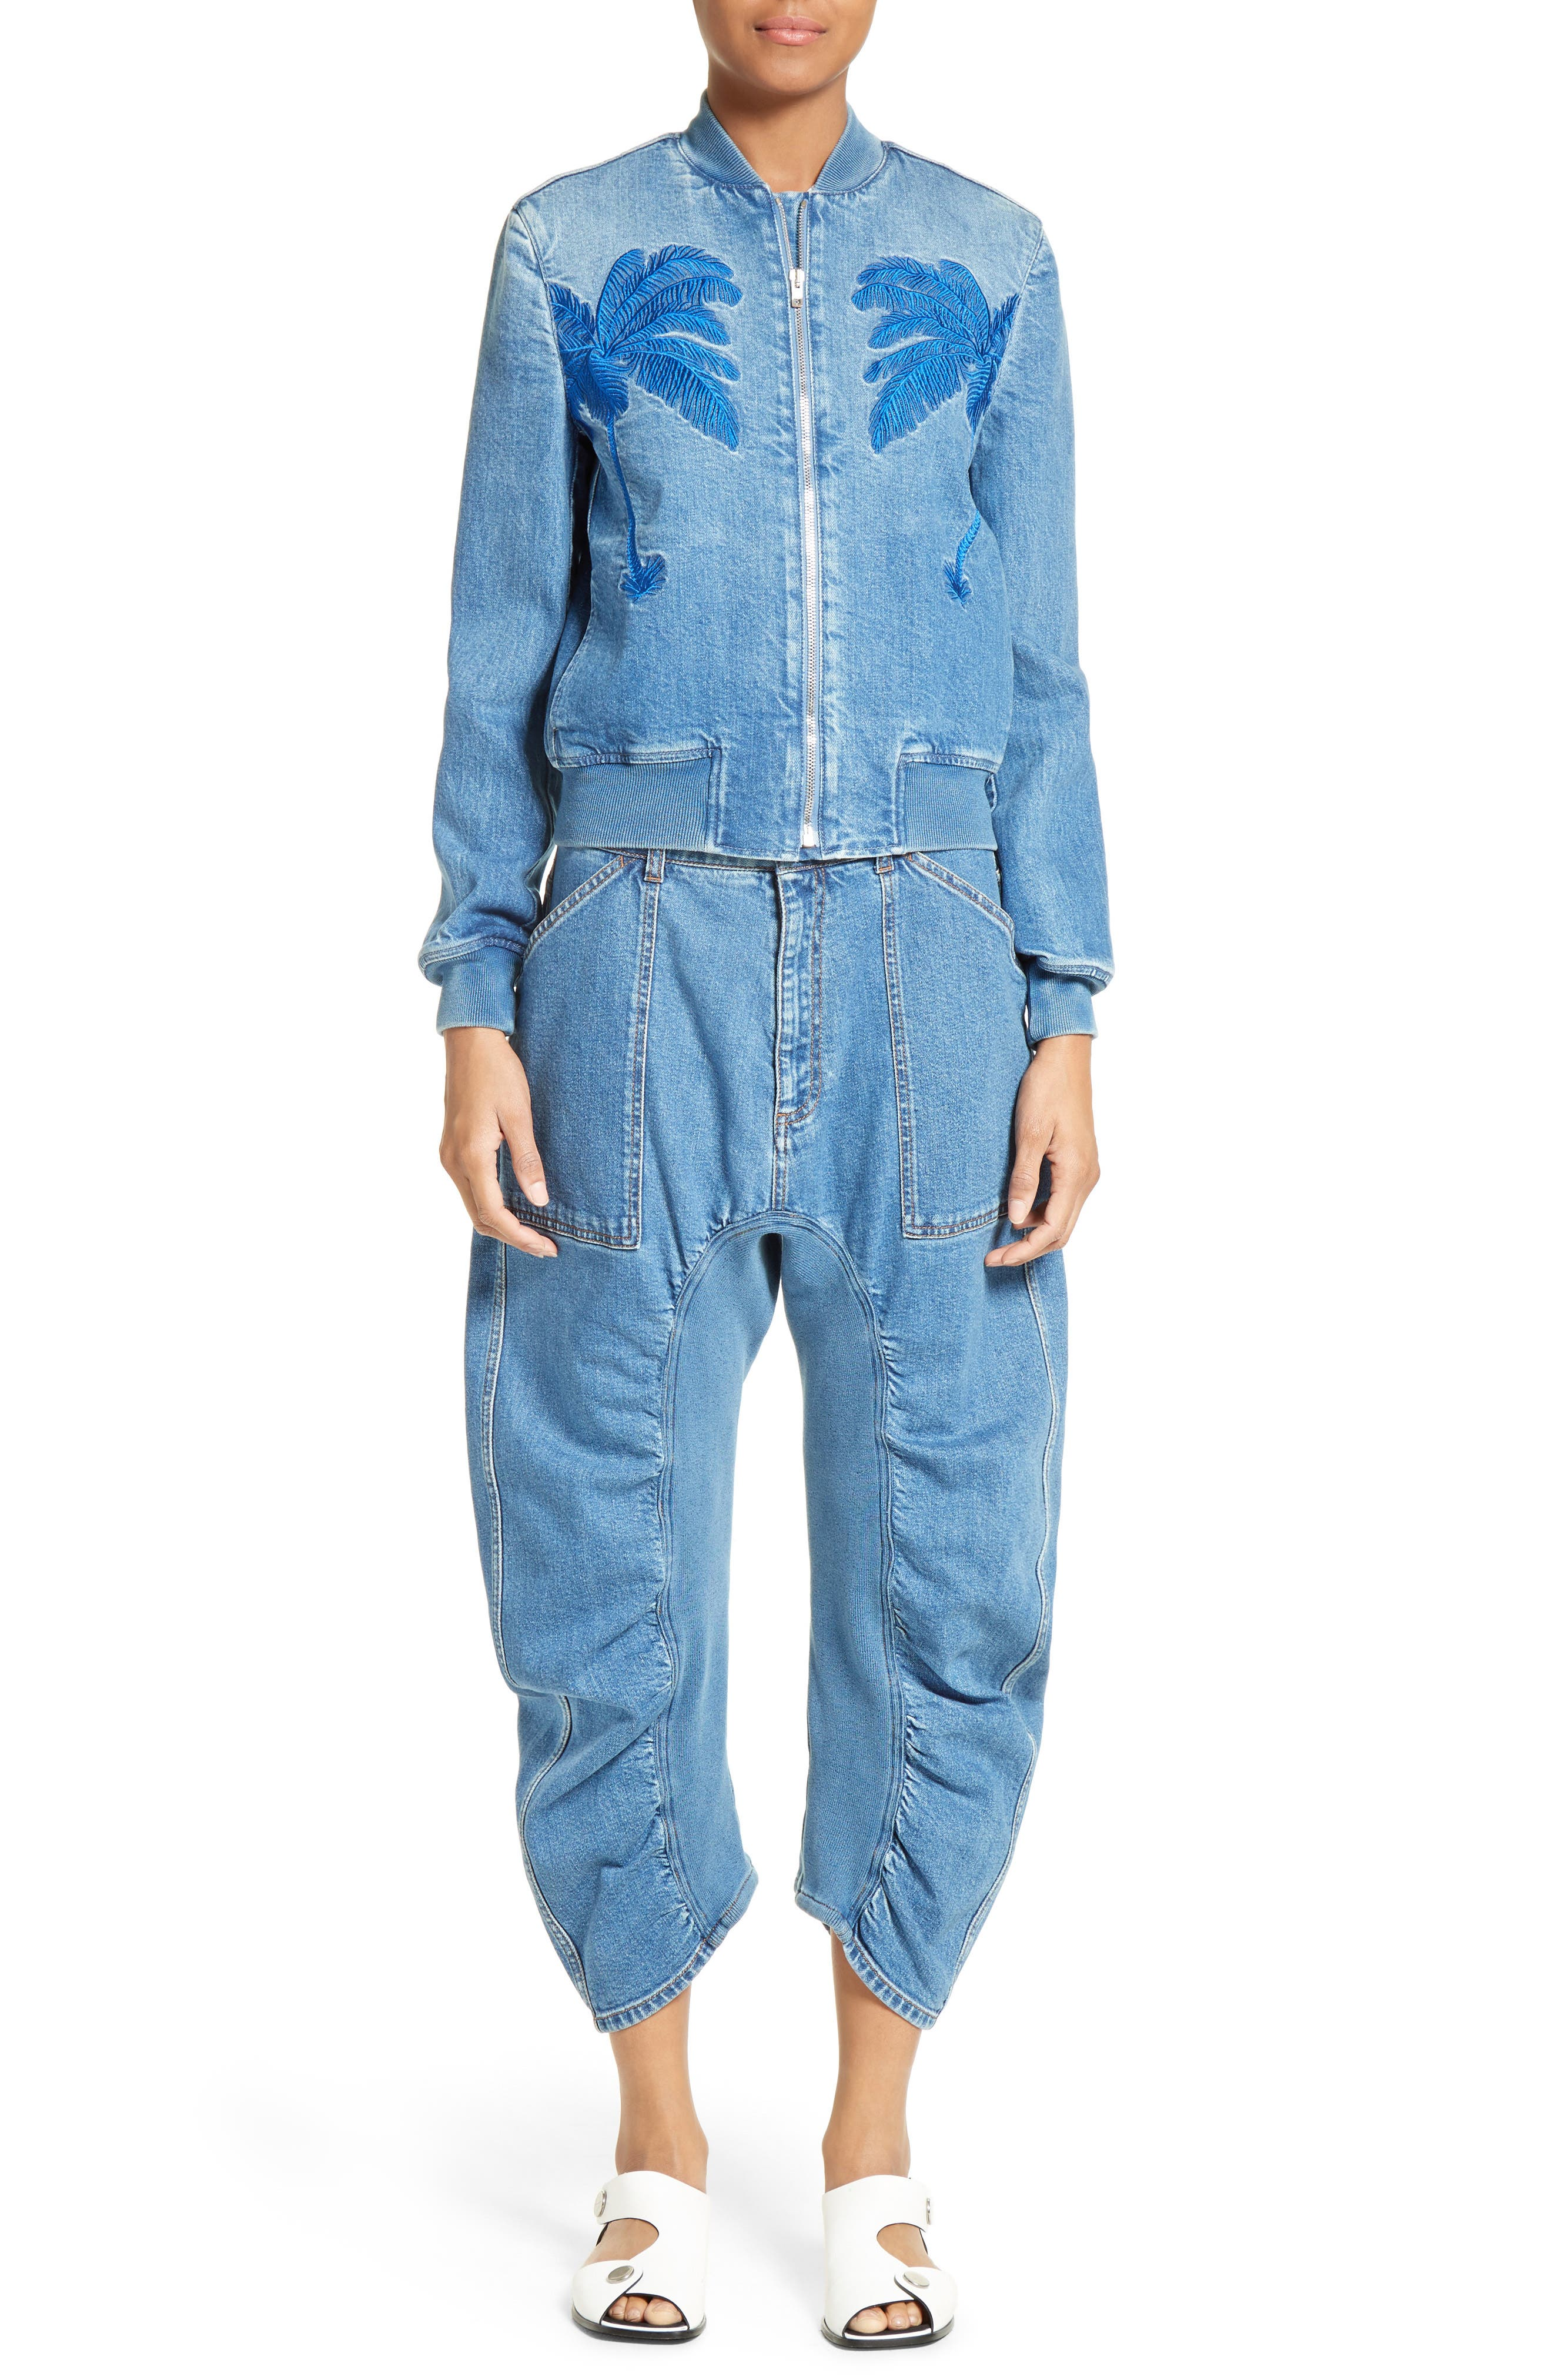 STELLA MCCARTNEY, Xenia Ruched Crop Jeans, Main thumbnail 1, color, 400